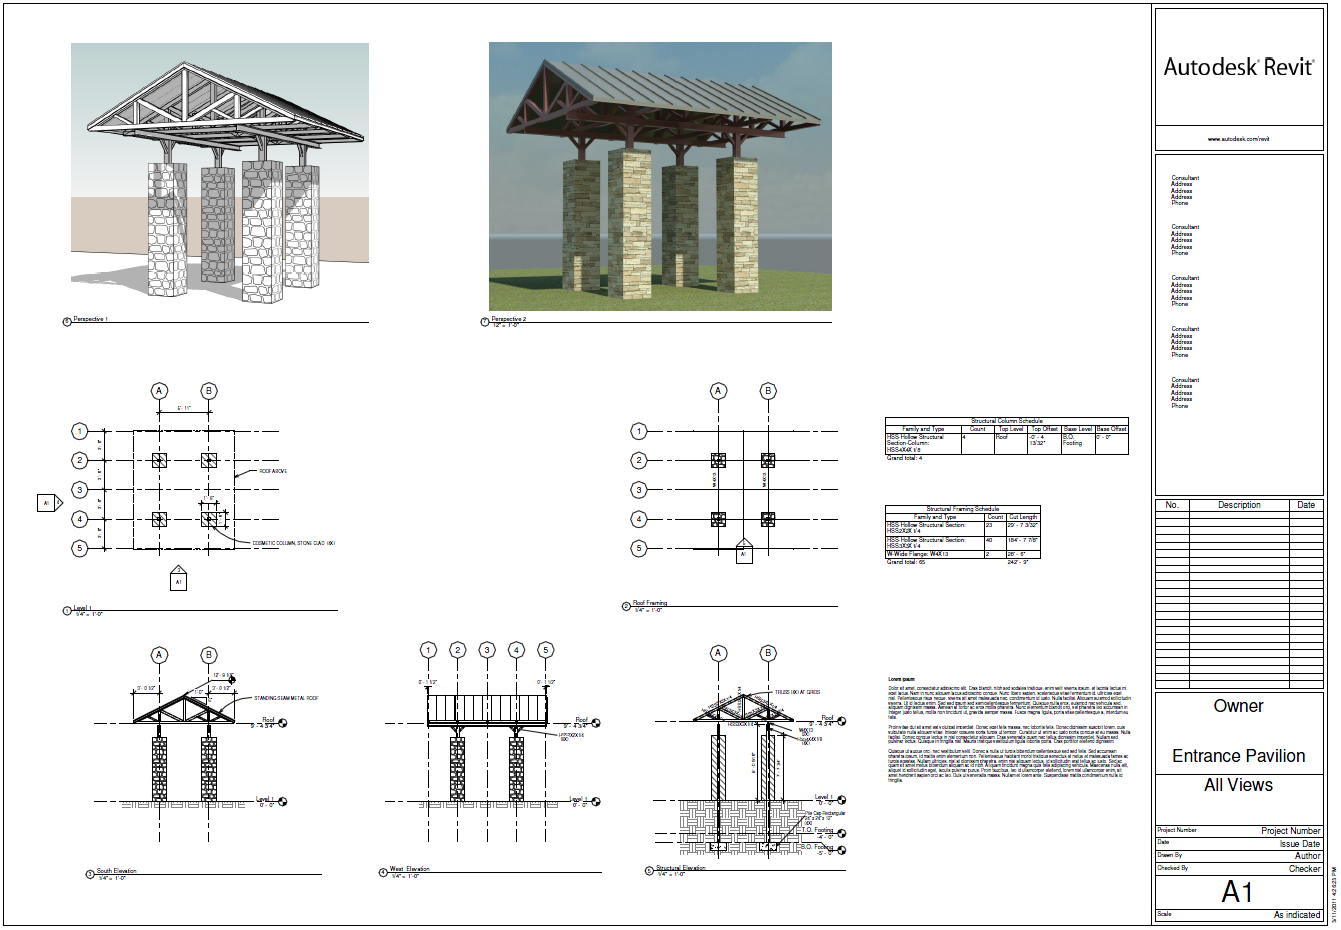 Revit Learning Club: For Monday, March 14, 2011 ... Cutepdf Printer